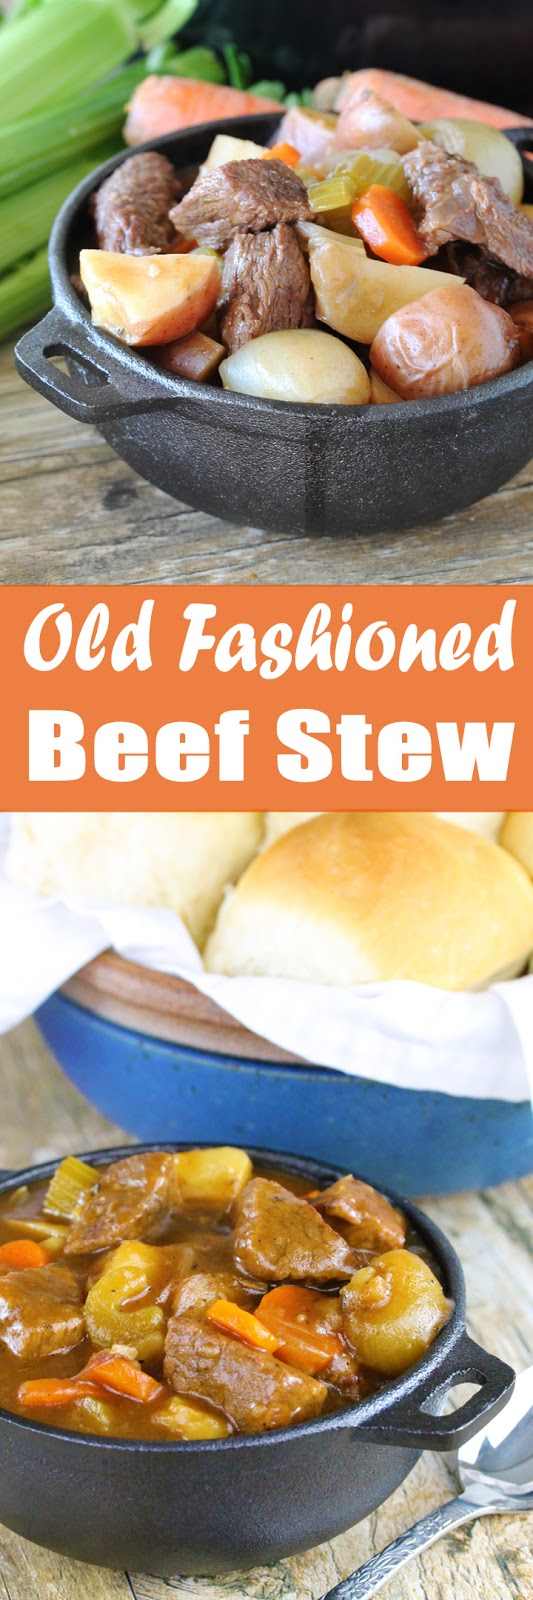 Hearty old fashioned beef stew is a classic comfort meal everyone loves.